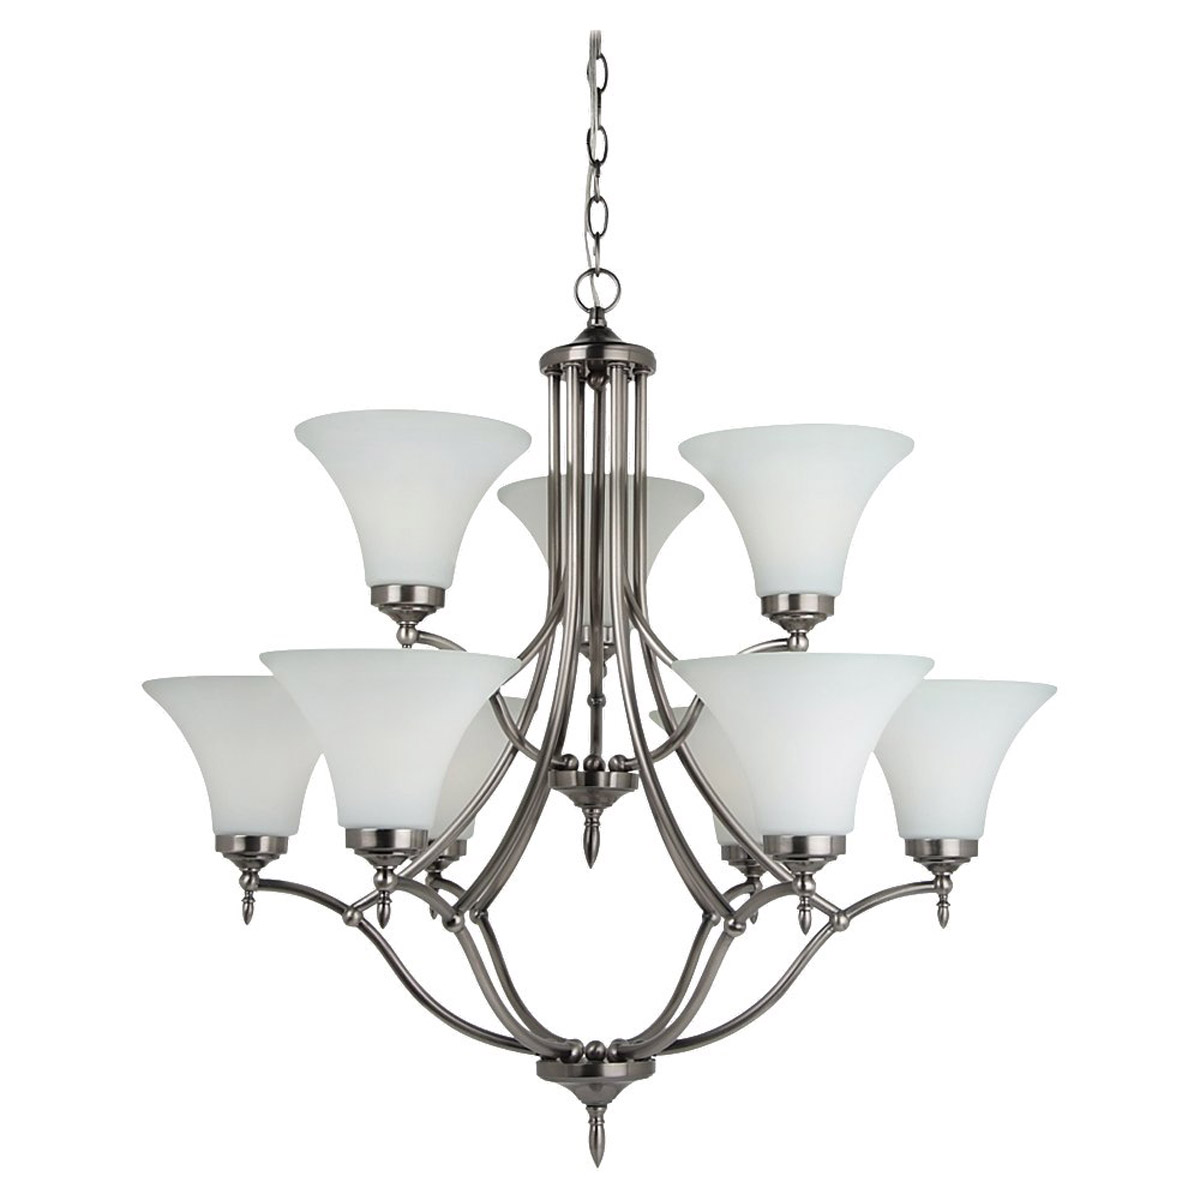 Sea Gull 31182-965 Montreal 9 Light 30 inch Antique Brushed Nickel Chandelier Ceiling Light in Etched,  White Inside Glass, Standard photo